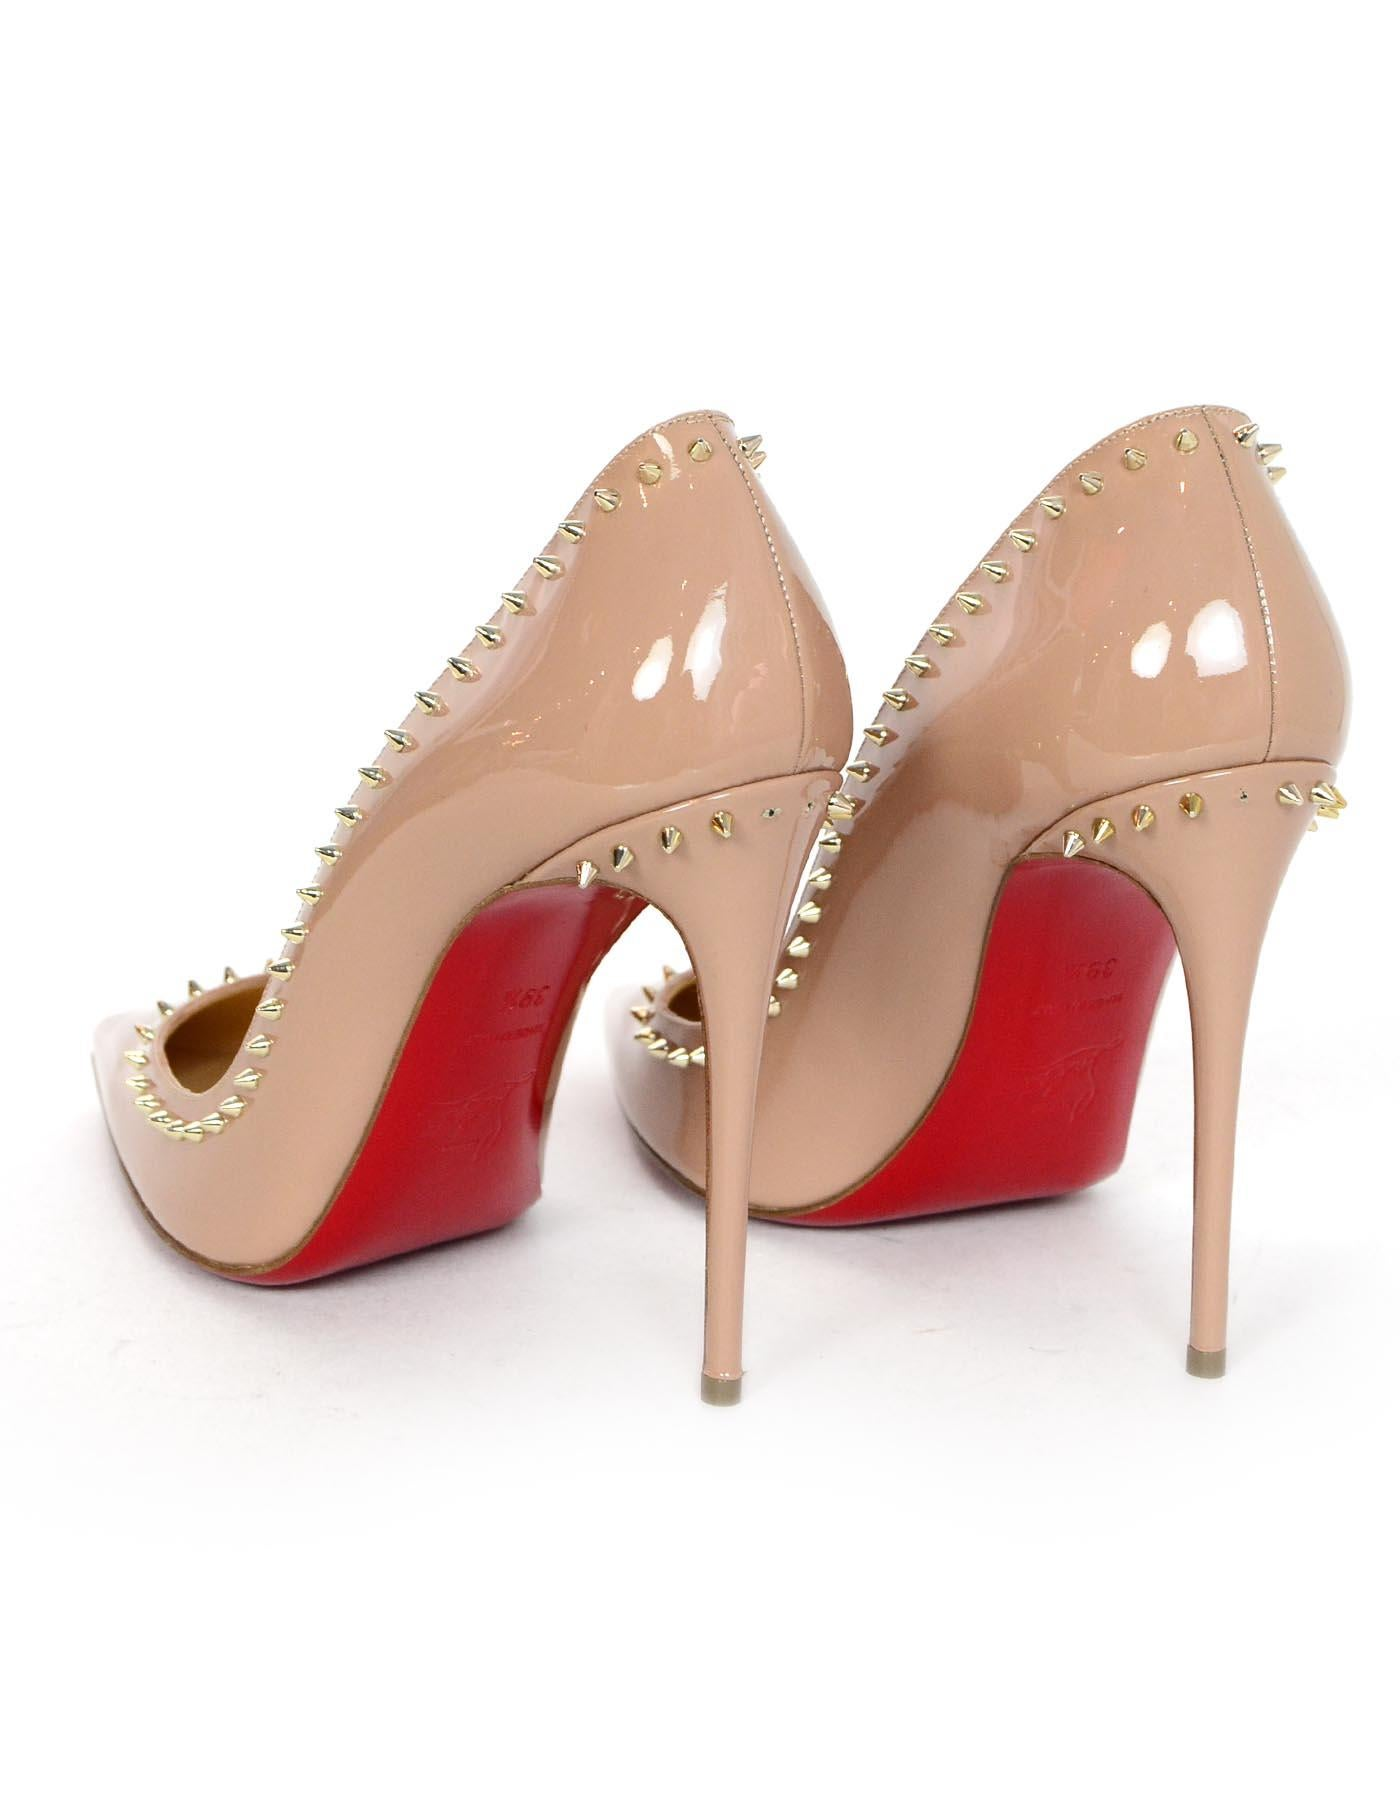 separation shoes ea573 e9275 Christian Louboutin Nude Patent Leather Studded Anjalina 100mm Pumps Sz 39.5